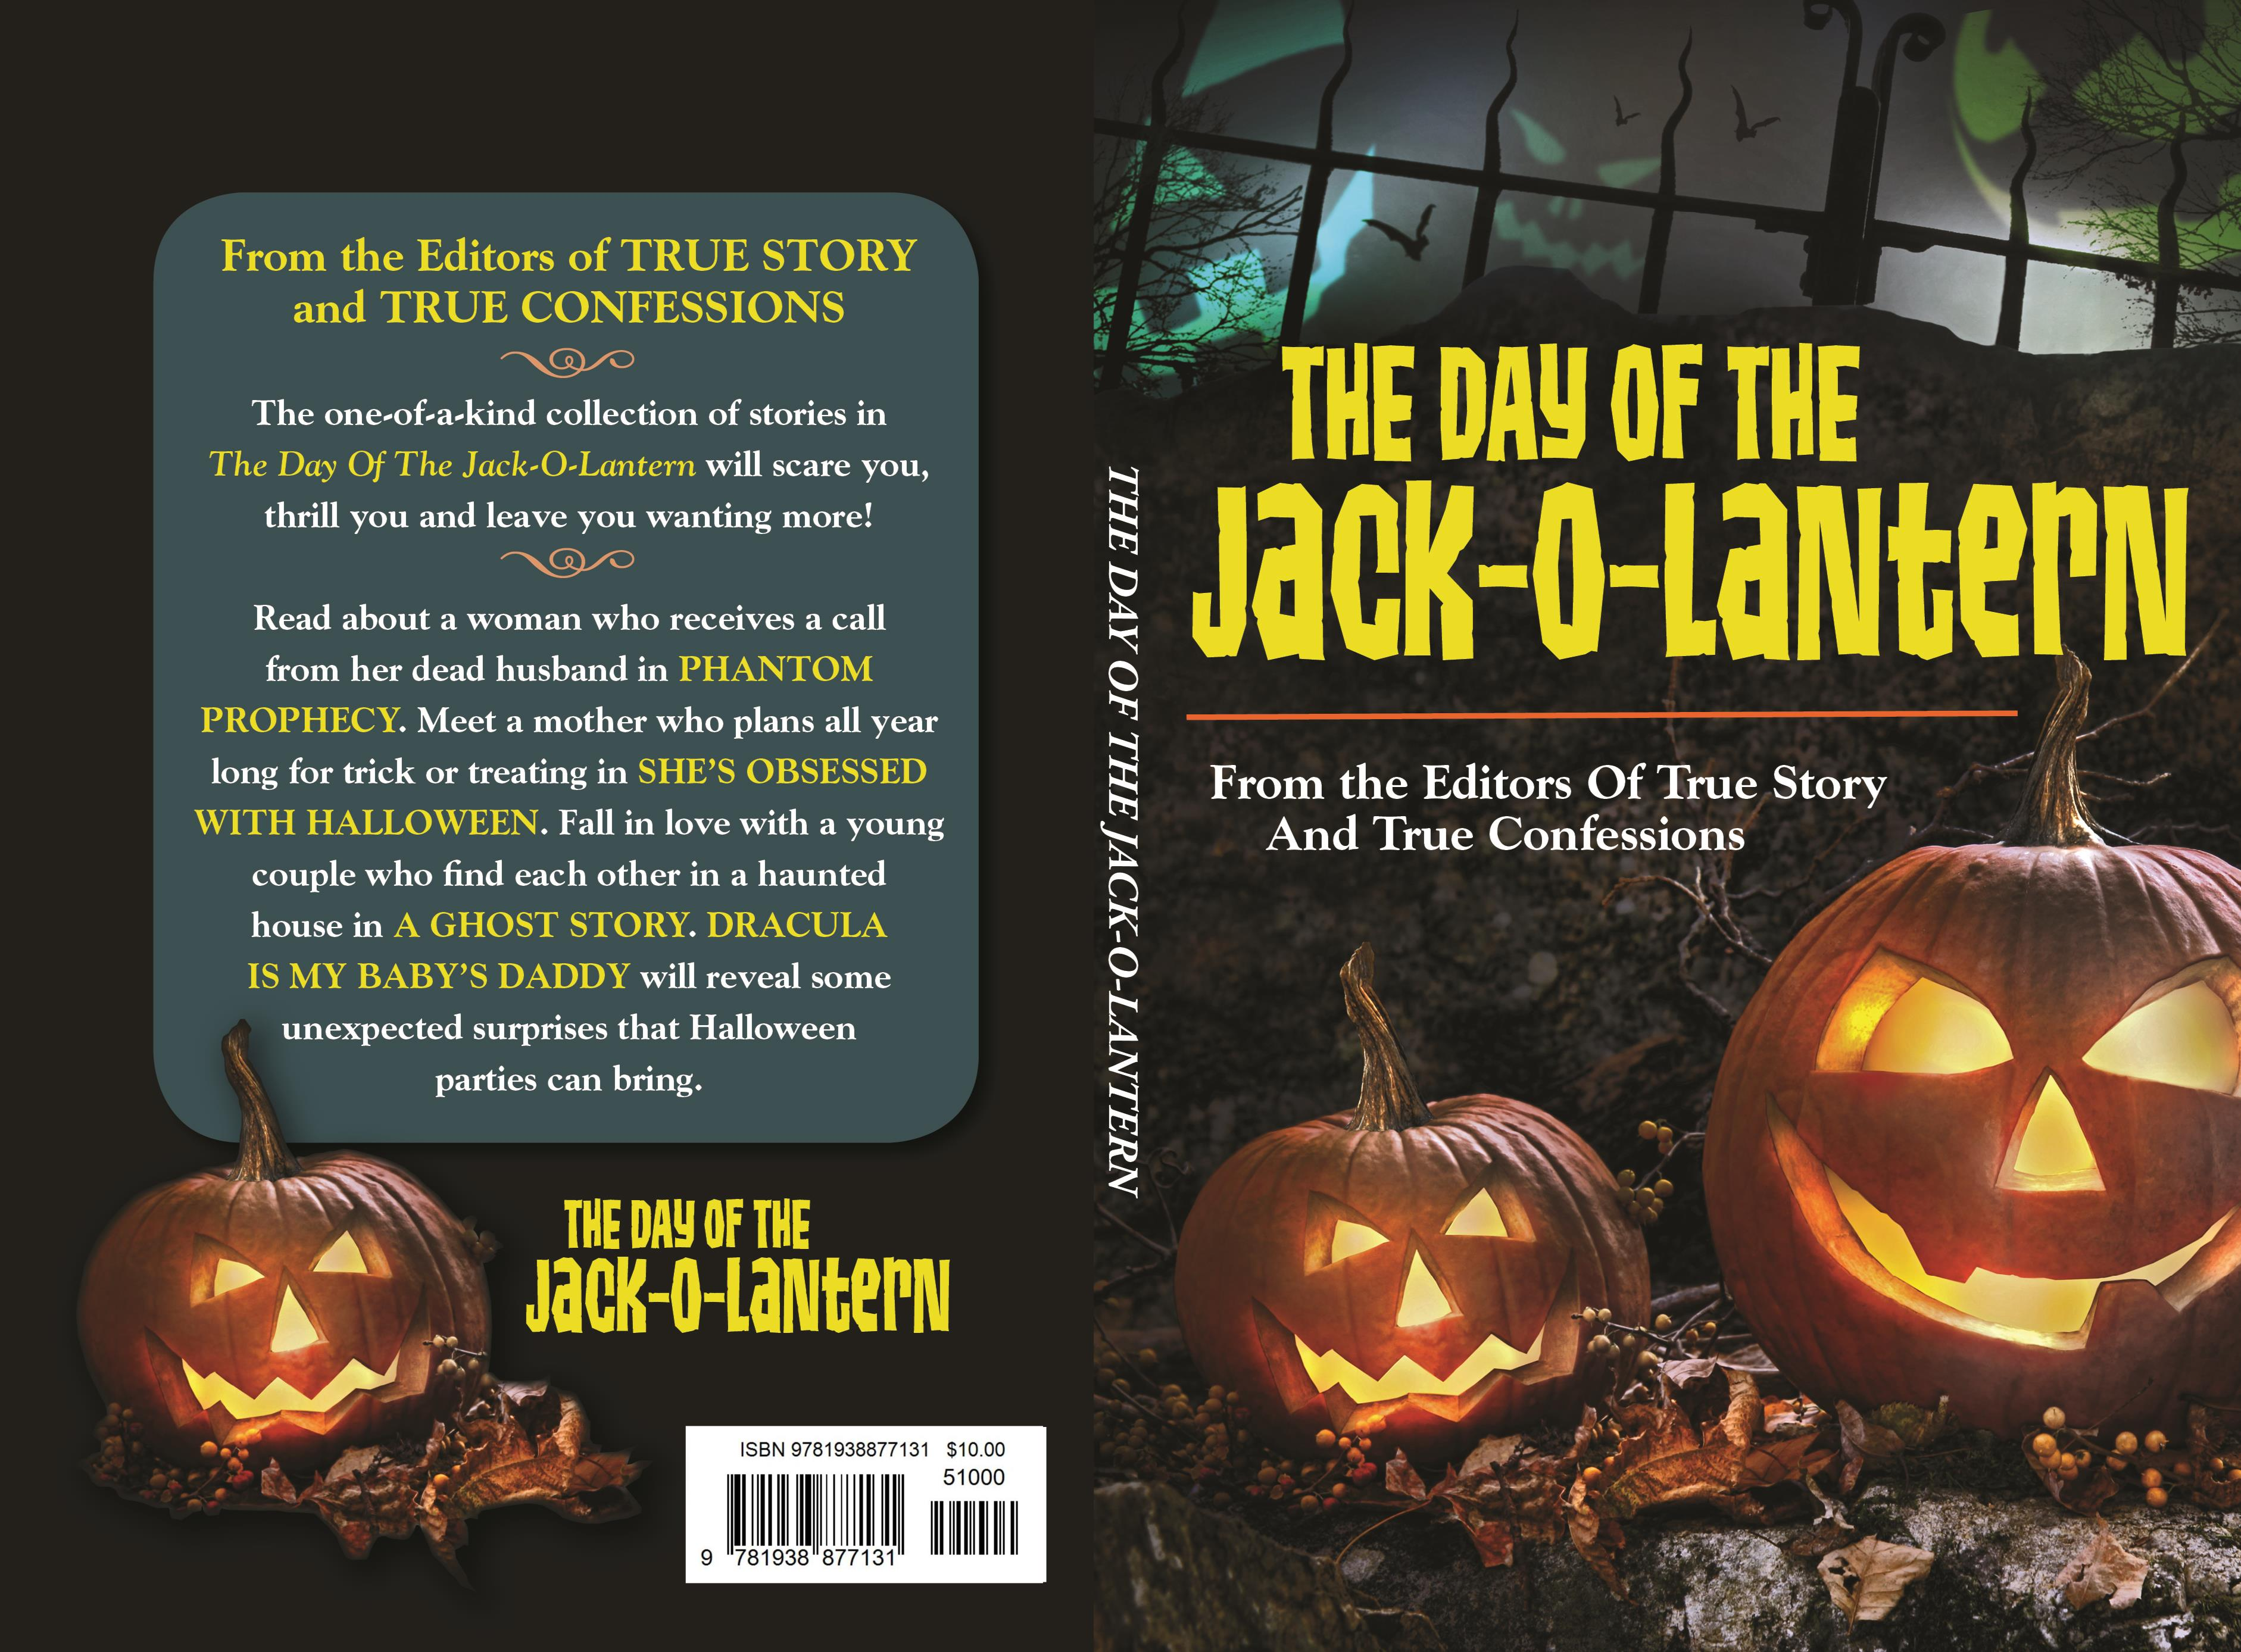 the day of the jack-o-lanternthe editors of true story and true